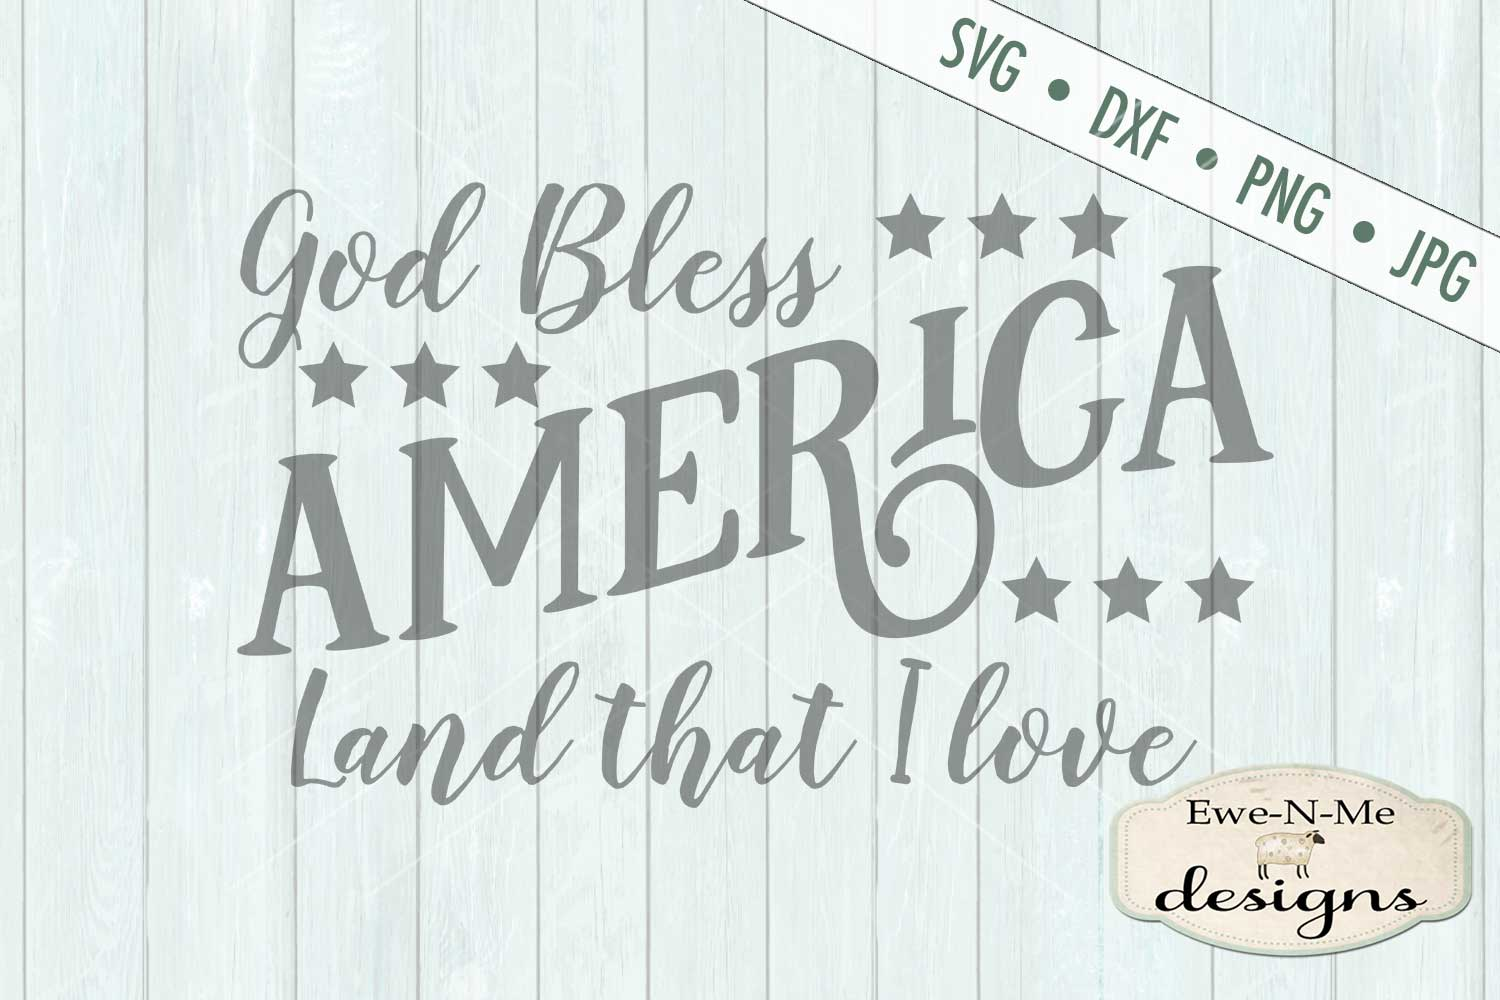 God Bless America Land That I Love SVG DXF Files example image 2